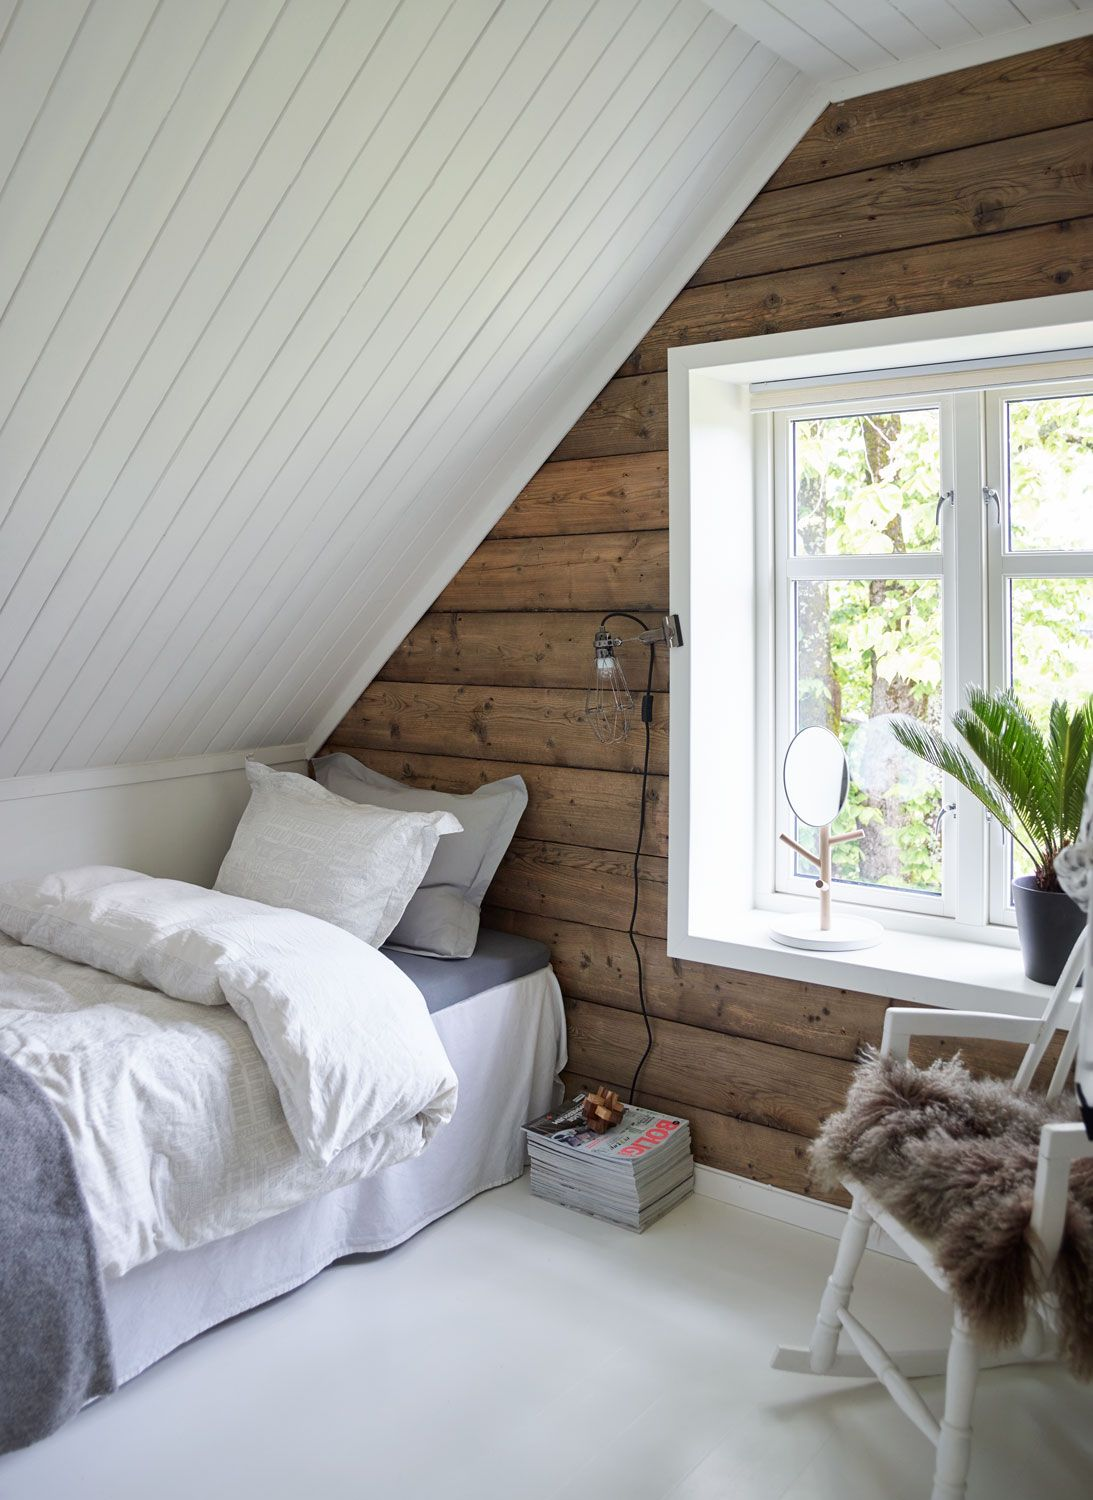 Attic Bedroom Design And Decor Tips Attic Bedroom Small Small